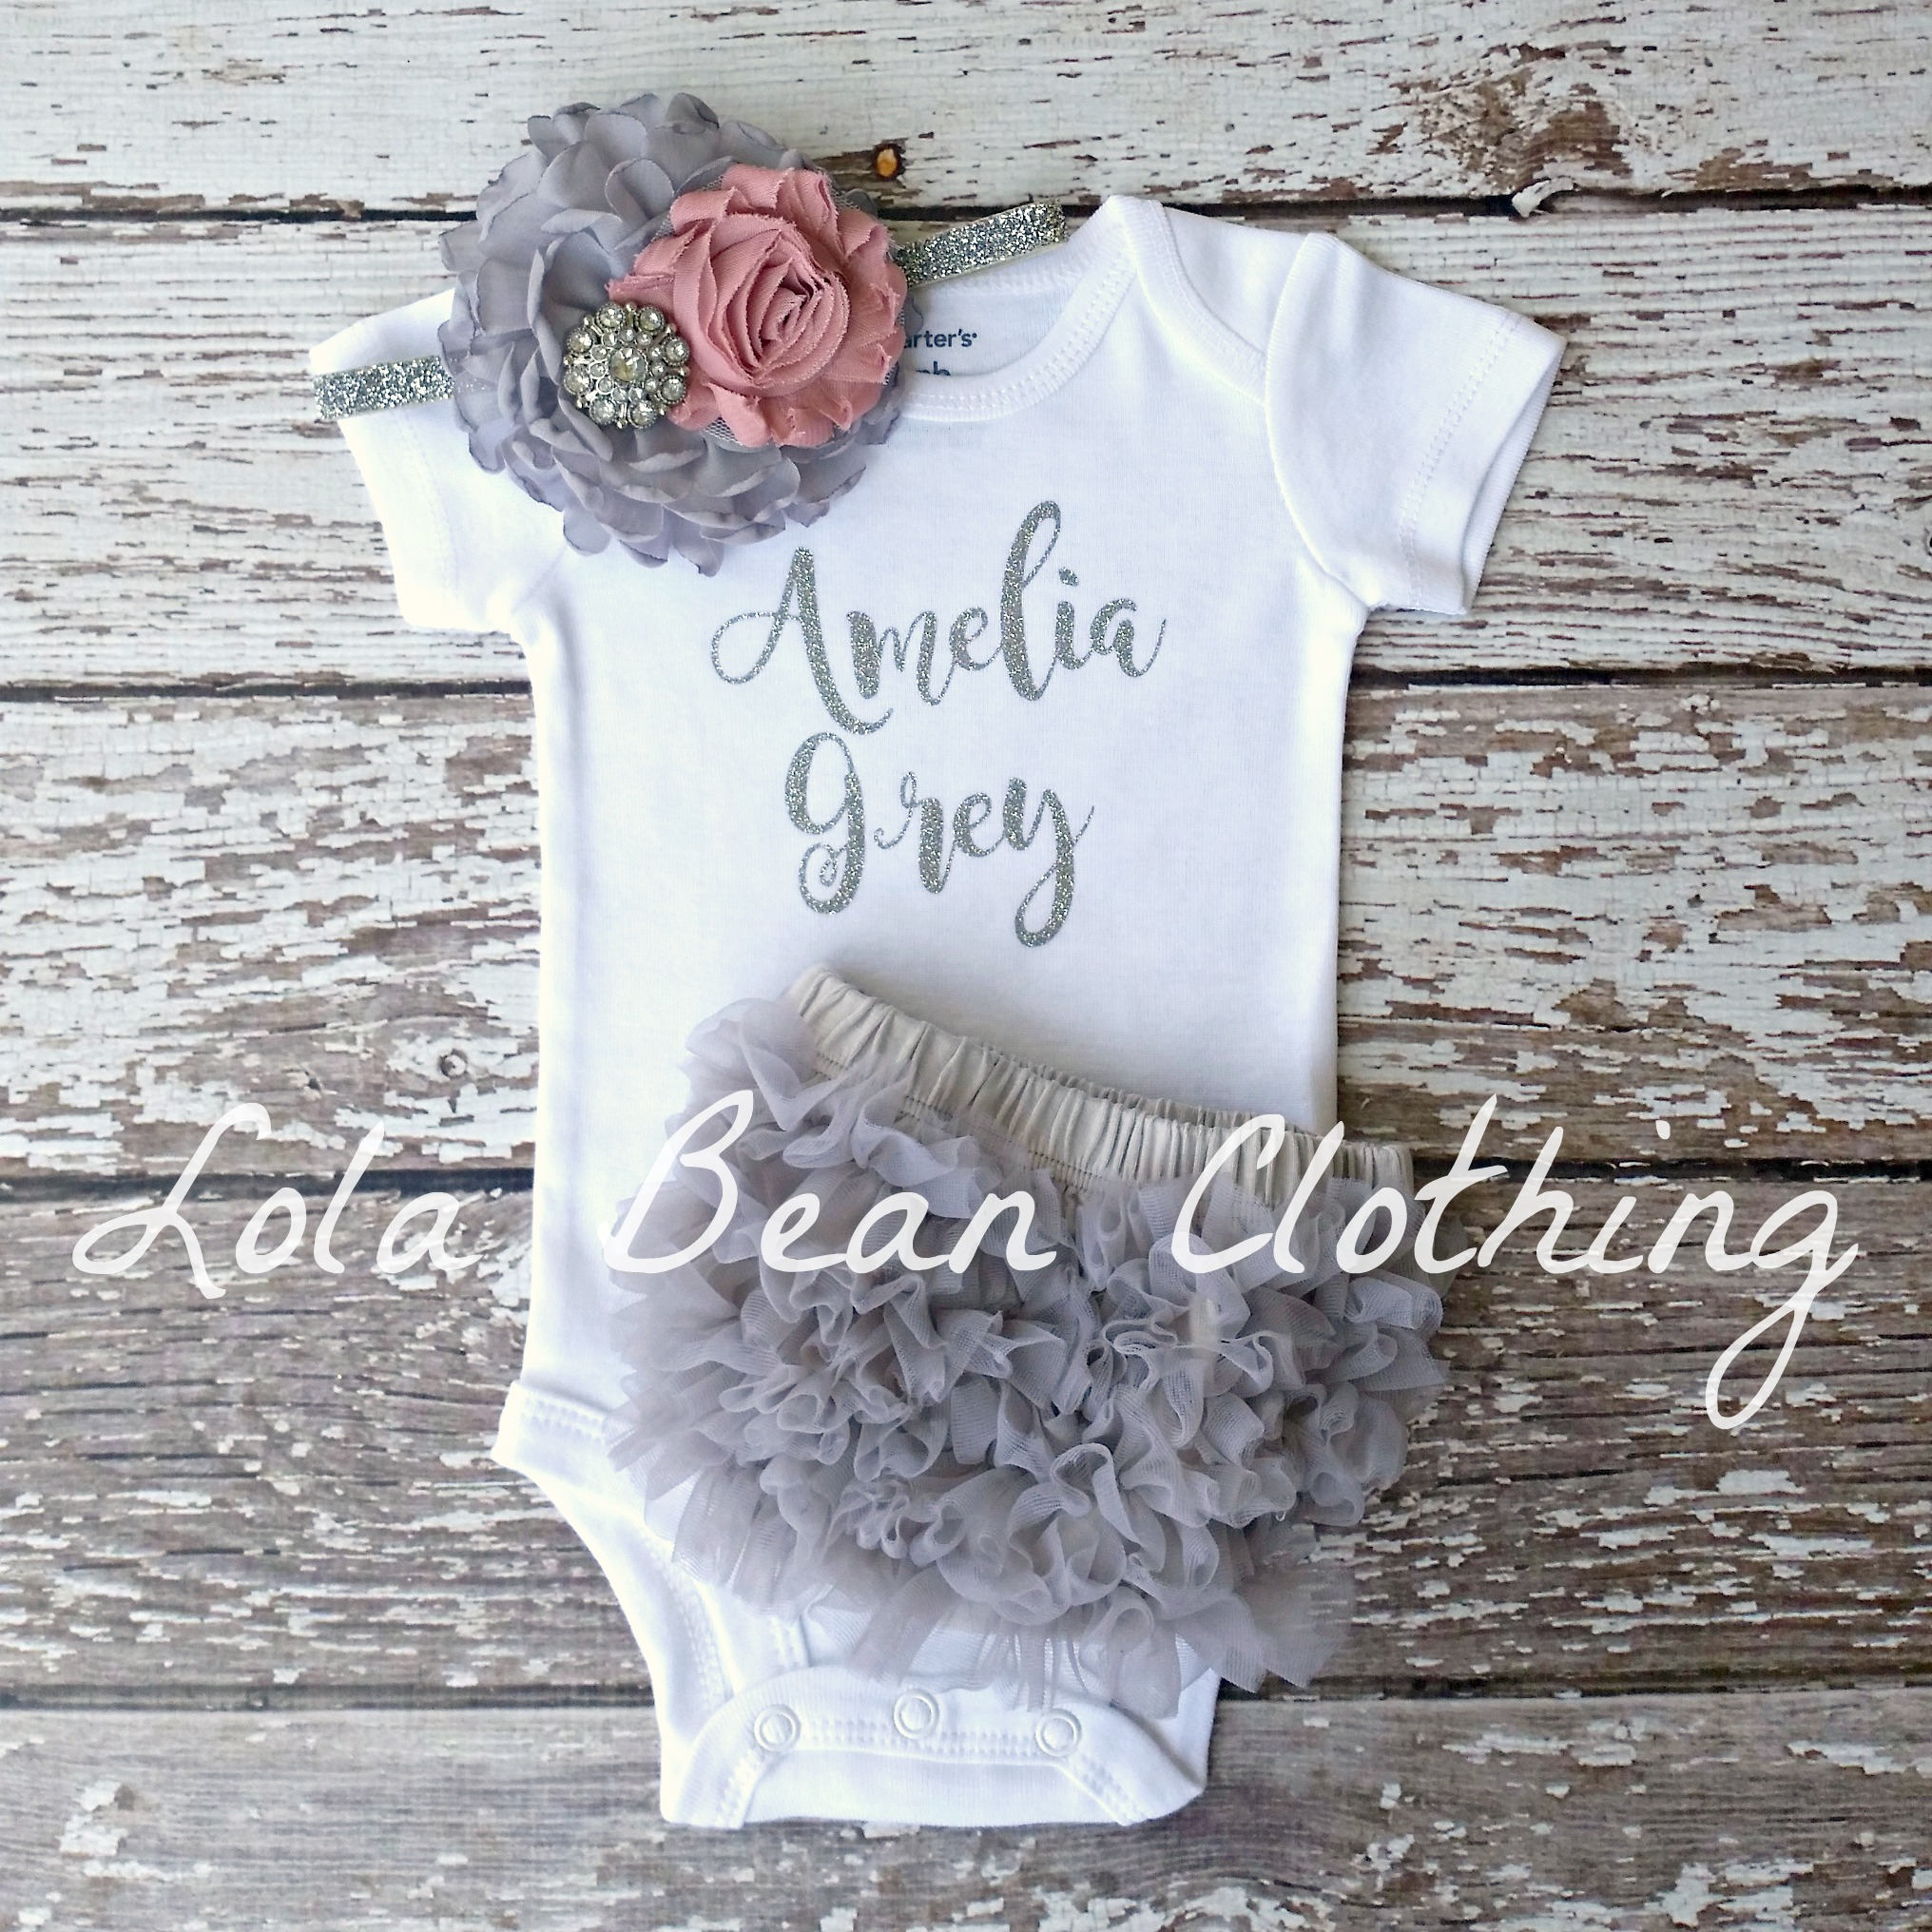 6cebf9330 Baby Girl Coming Home Outfit | Newborn Girl Coming Home Outfit